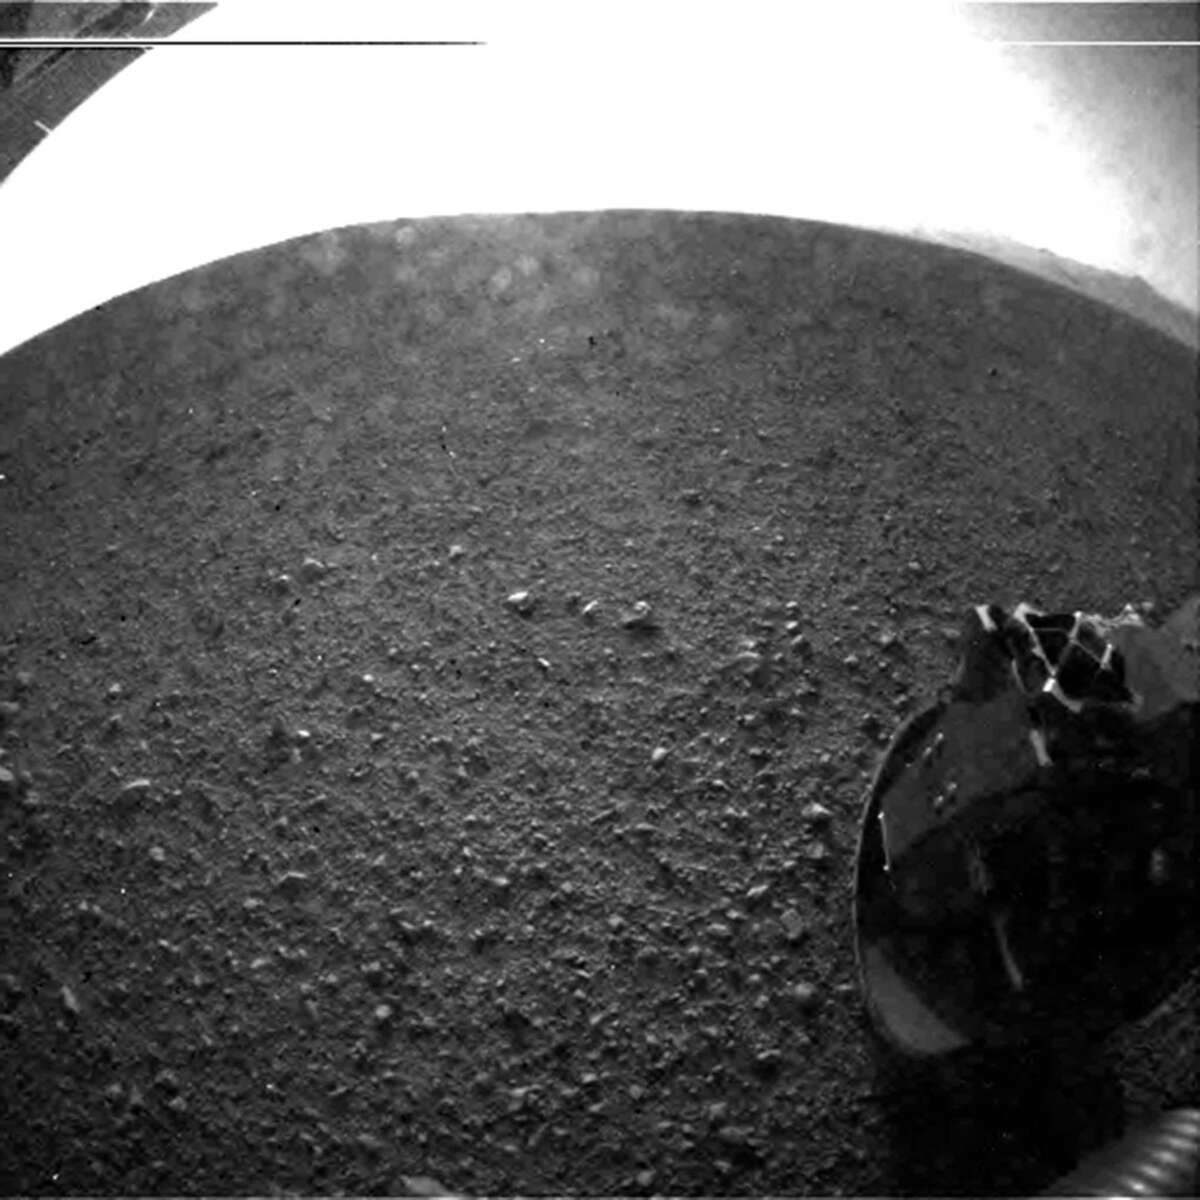 Gravel on the surface of Mars' Gale Crater is seen in this image taken by Curiosity. On the horizon is the rim of the crater. Part of the spring that released the lens' dust cover is at bottom right, near the rover's wheel. The lines at top are an artifact from the sensor since the camera is looking into the sun.